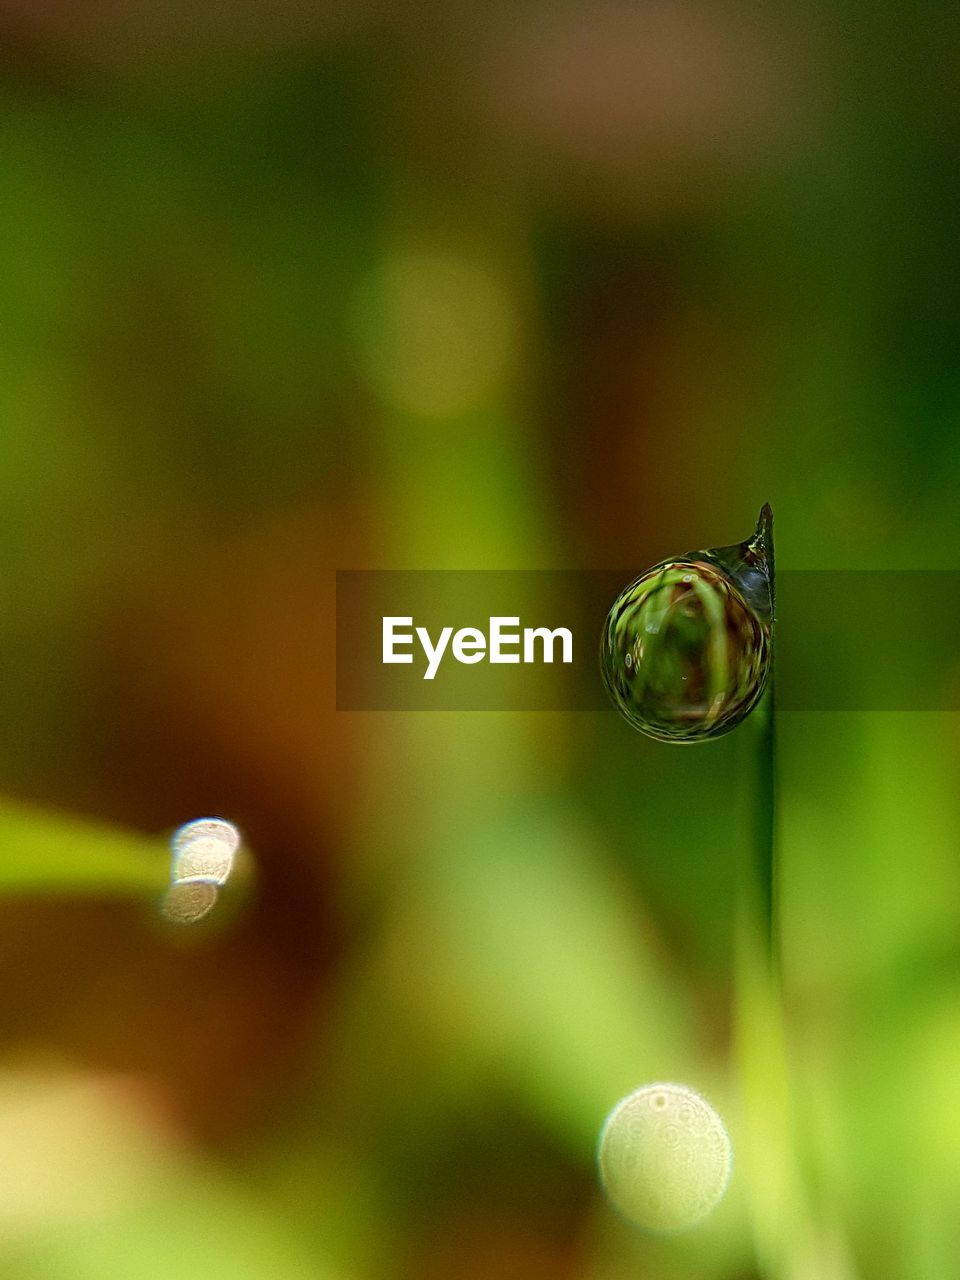 no people, close-up, focus on foreground, nature, day, outdoors, water, fragility, beauty in nature, animal themes